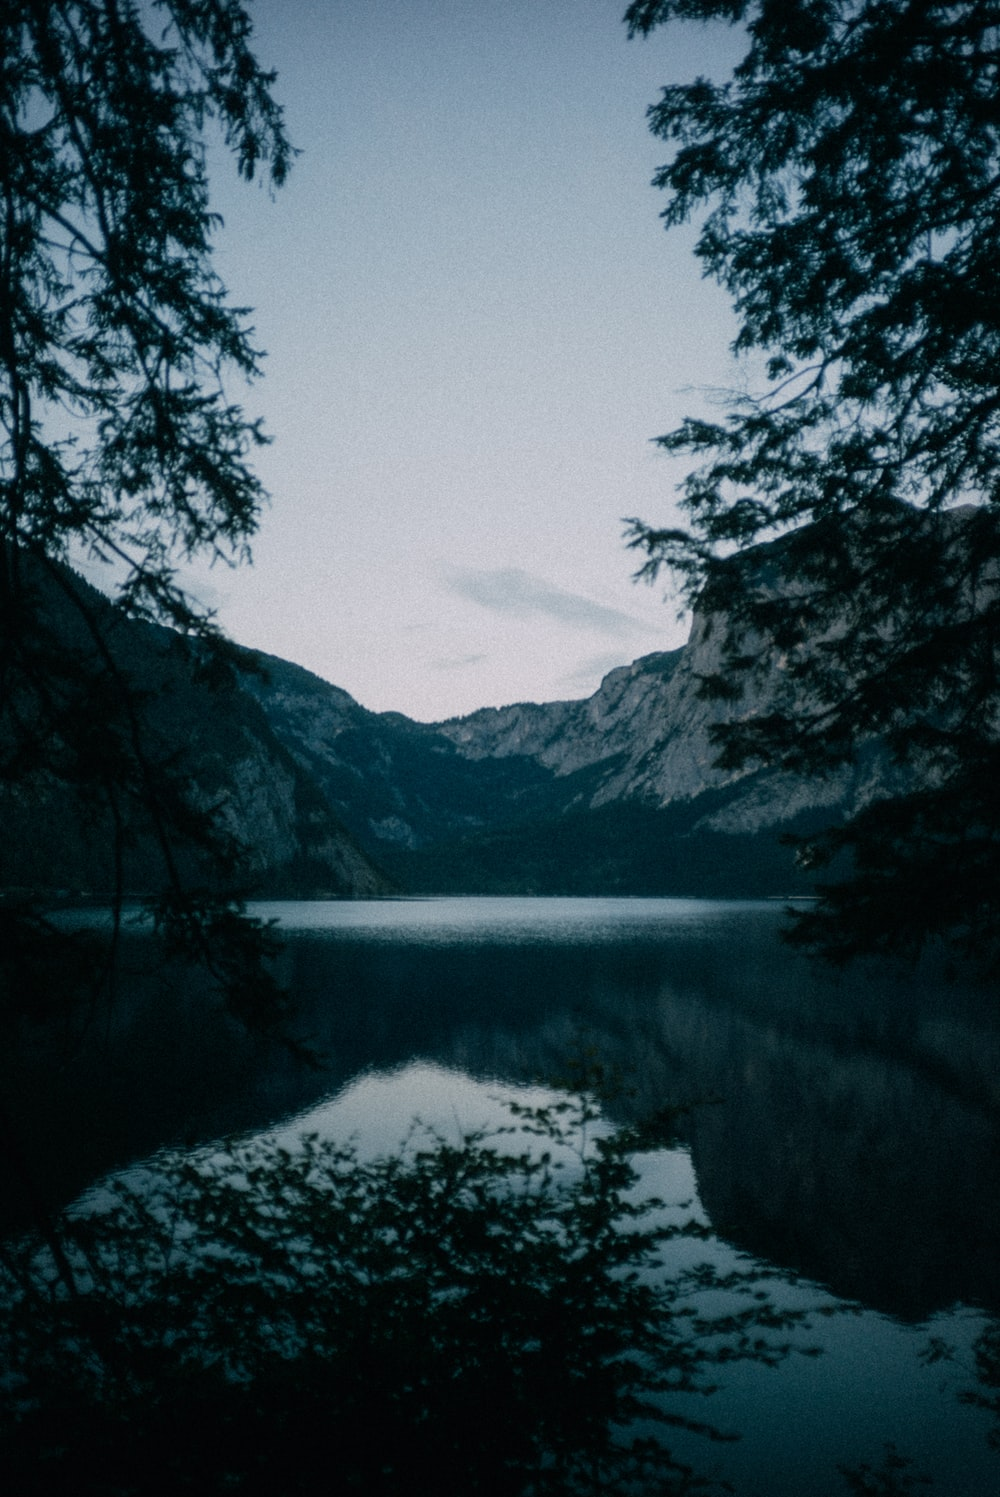 lake surrounded by trees and mountains